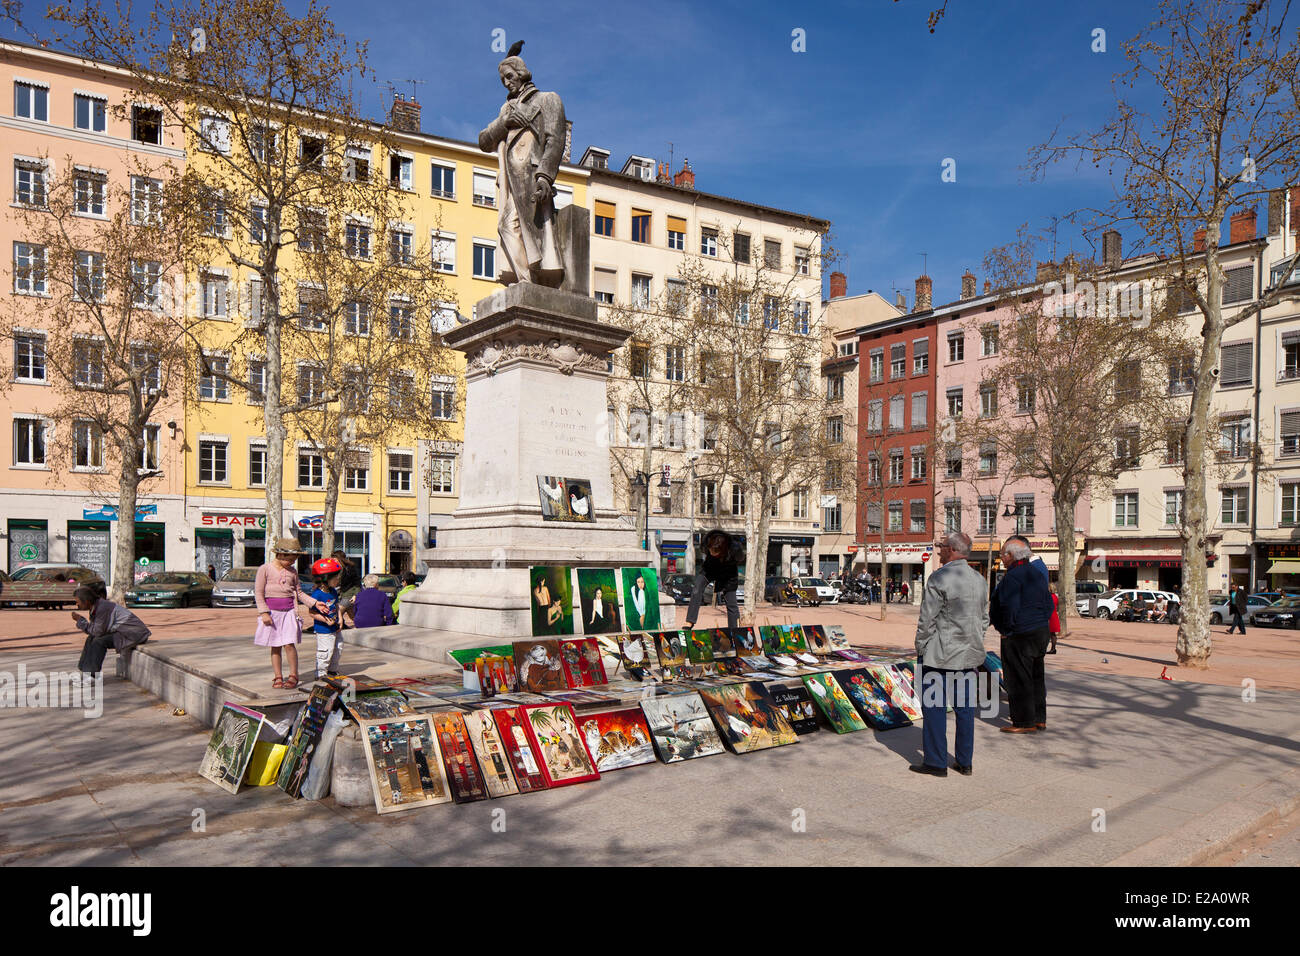 France, Rhone, Lyon, historical site listed as World Heritage by UNESCO, La Croix Rousse District, Place de la Croix - Stock Image